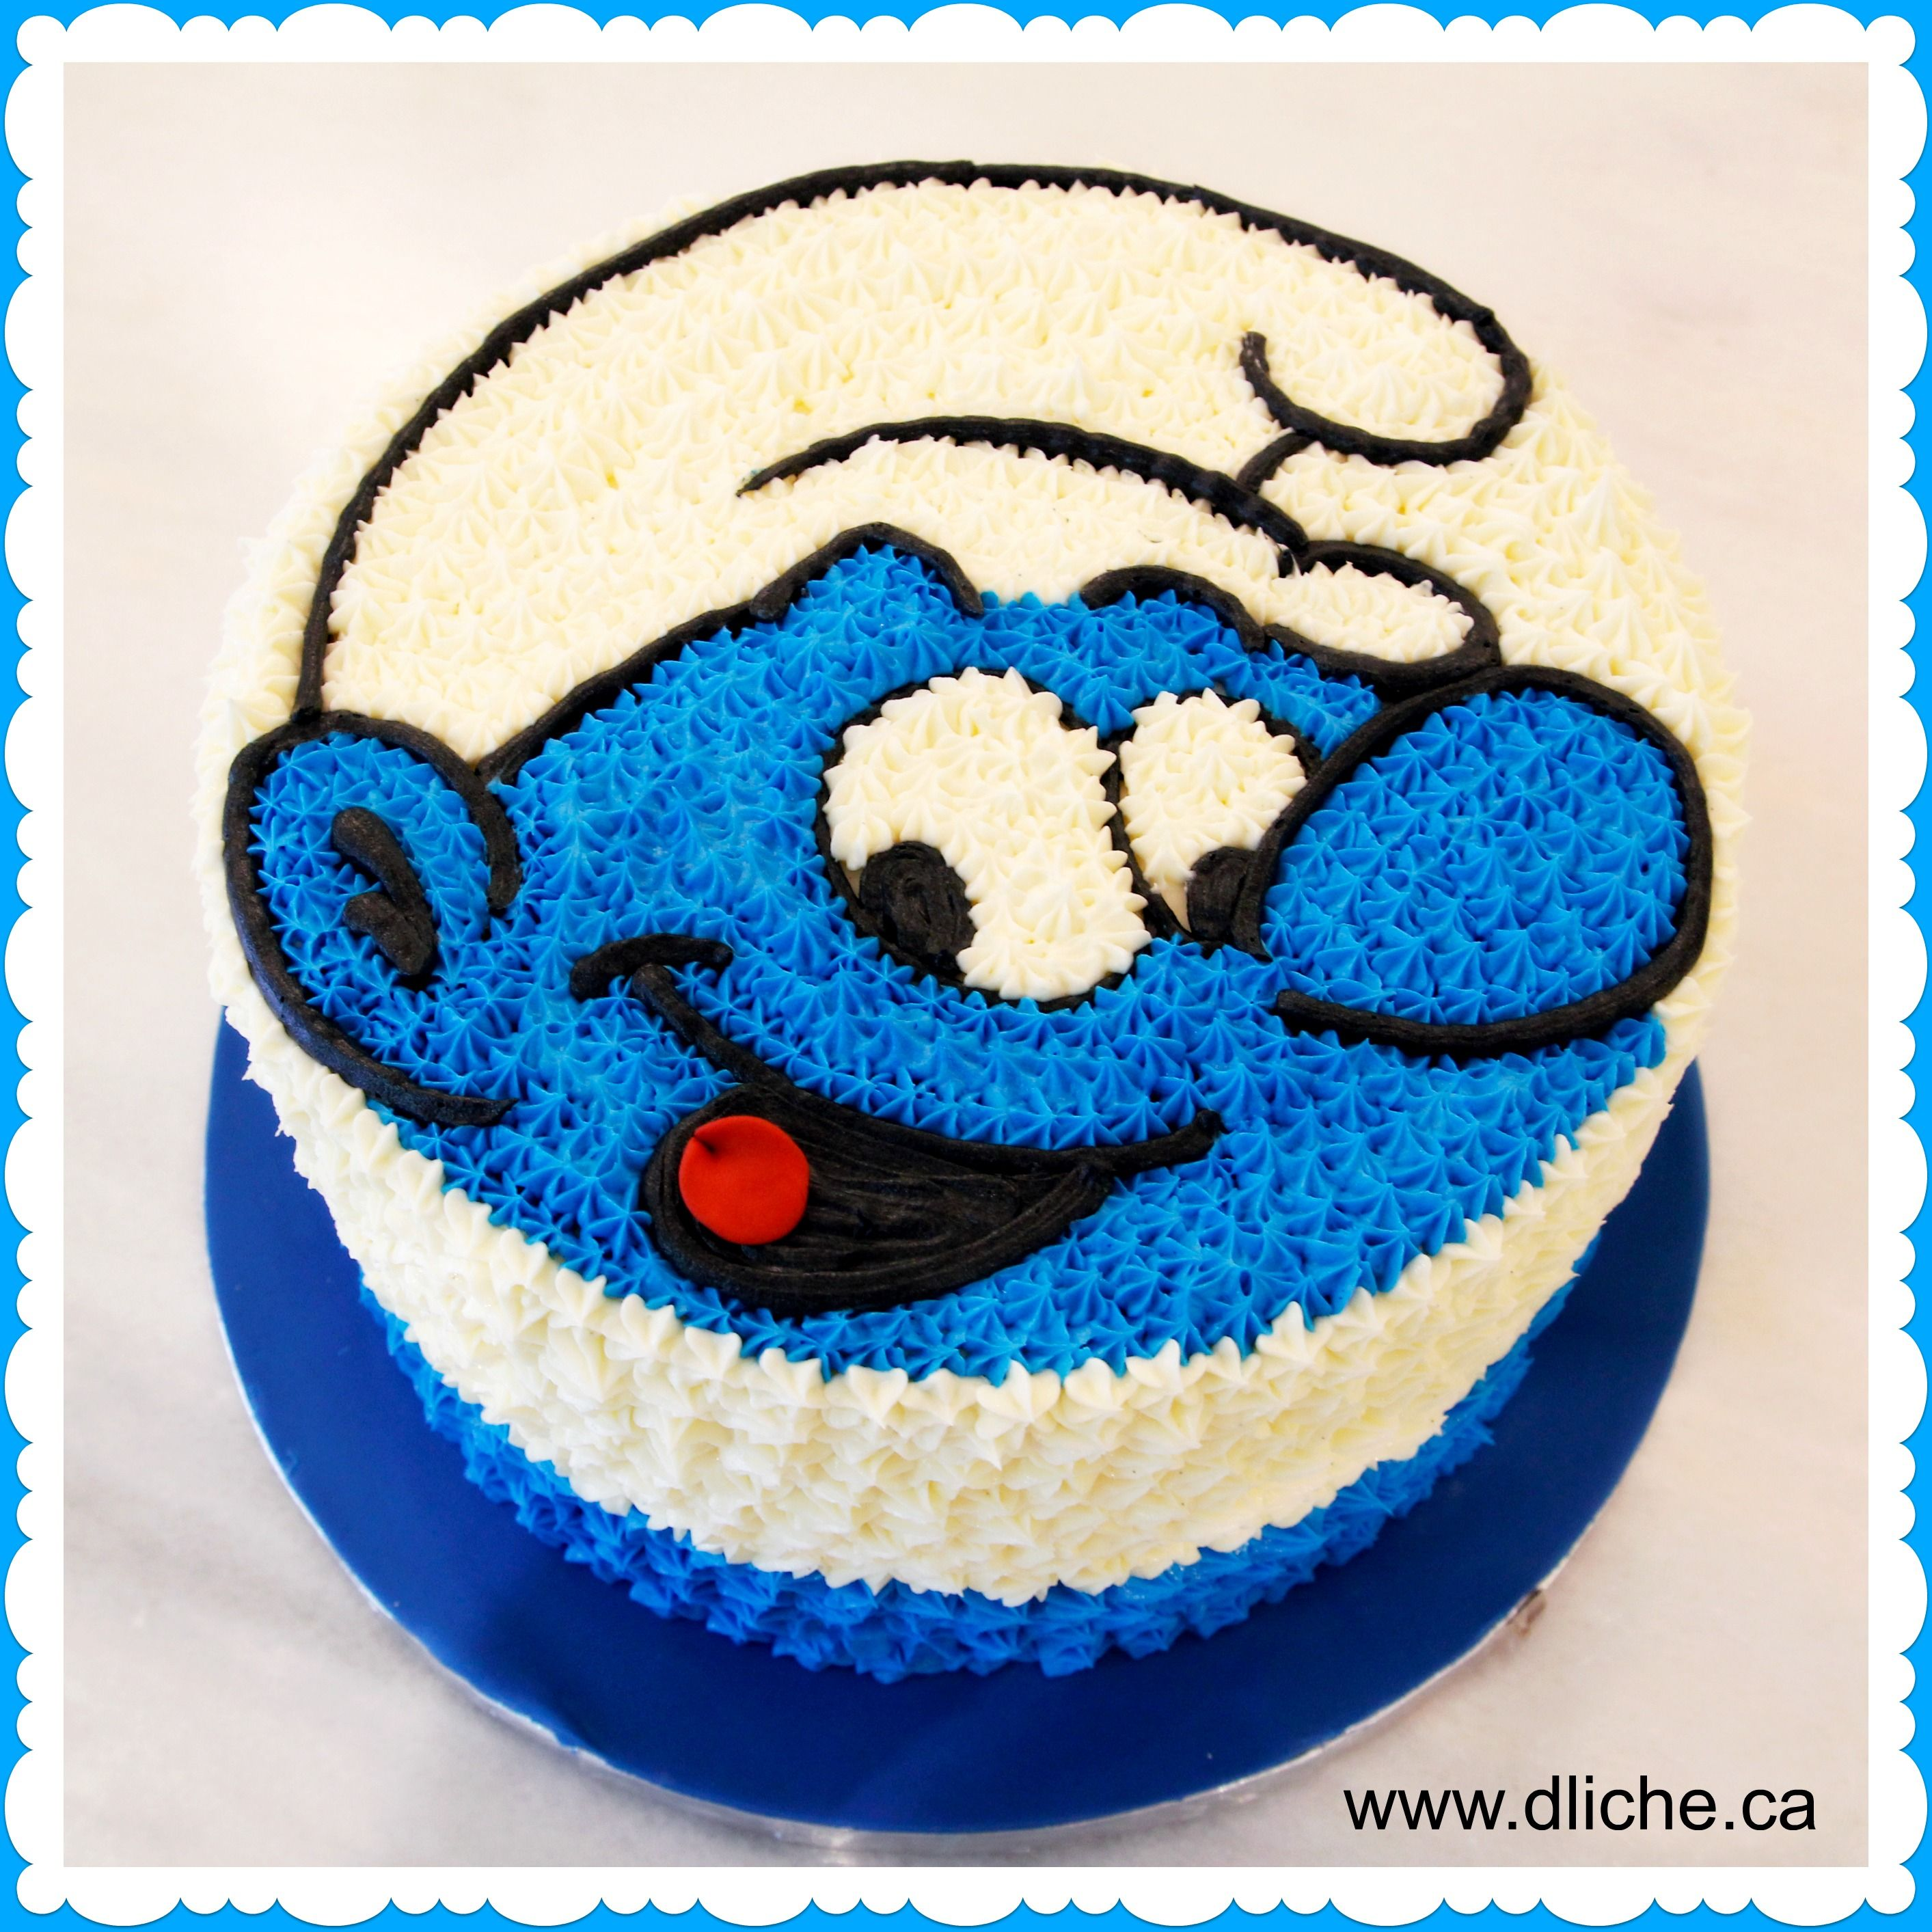 smurf cake g teau de schtroumpf simplement d liche cupcakes cakes pinterest cake. Black Bedroom Furniture Sets. Home Design Ideas